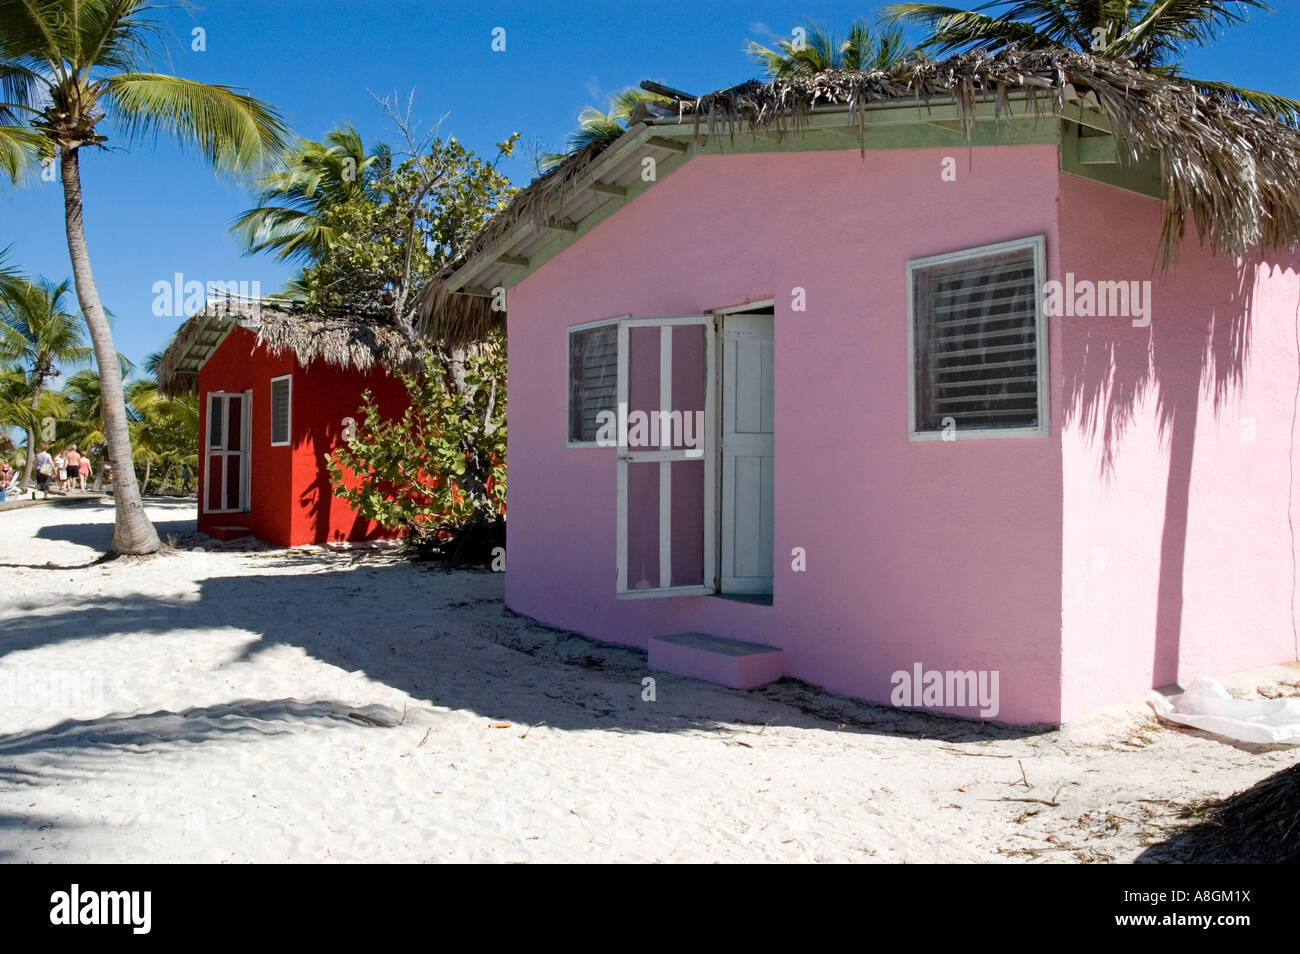 Colourful beach houses with roofs thatched with palm leaves stand on a white sandy beach amid Palm trees,Catalina - Stock Image